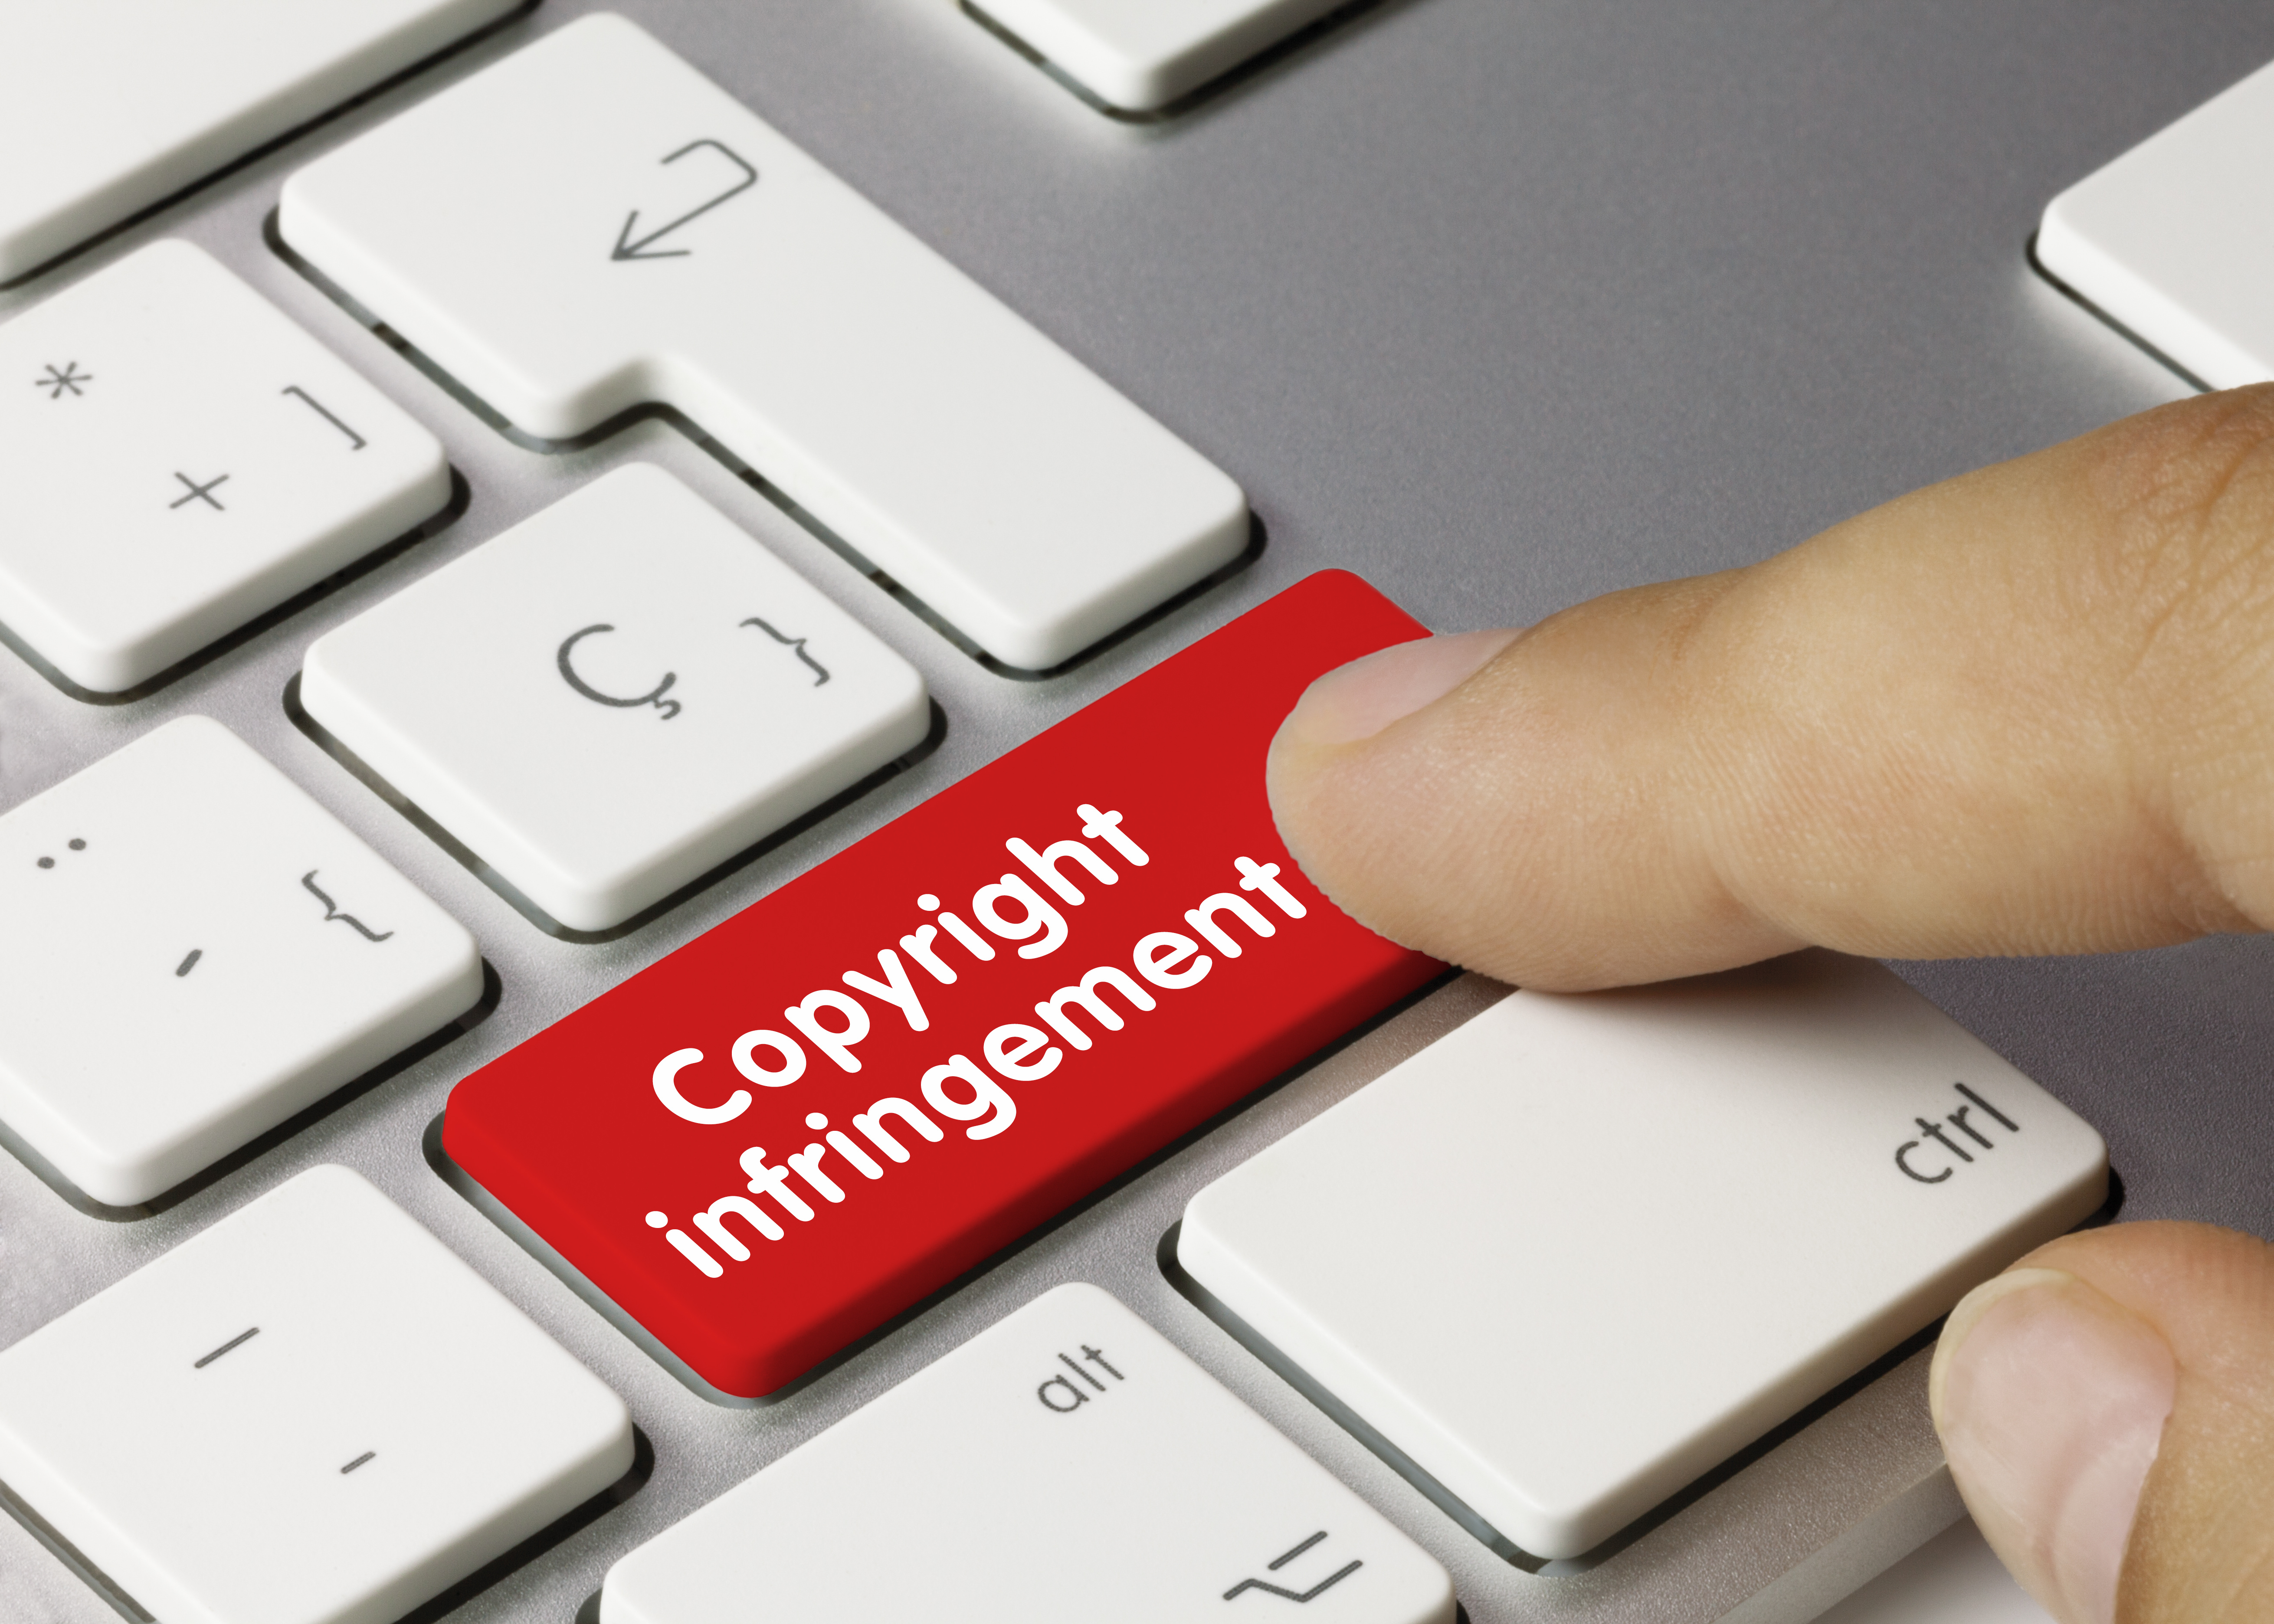 I Received A Comcast Copyright Infringement Letter And Subpoena